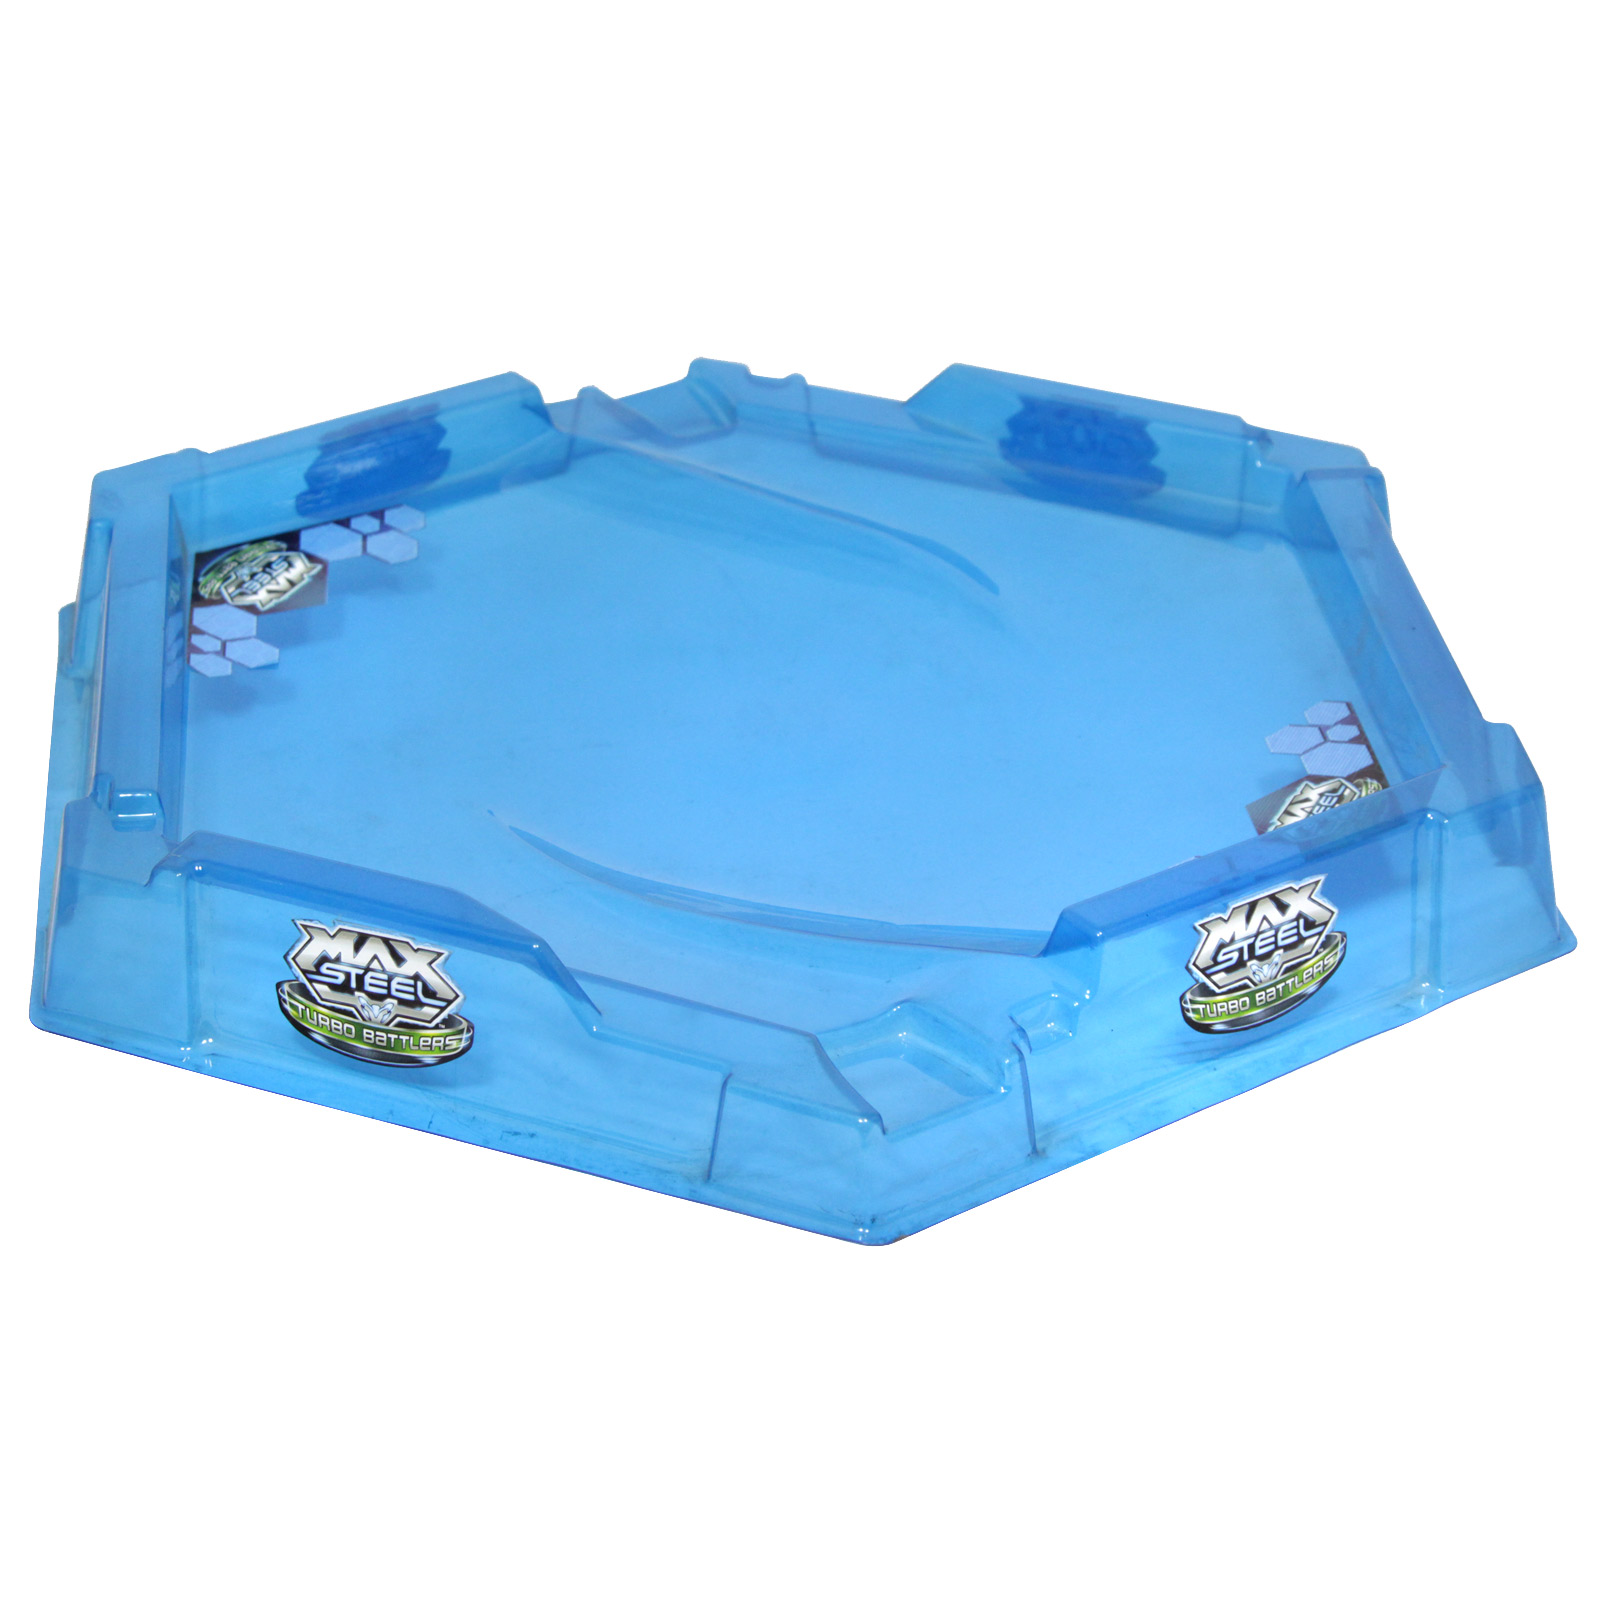 MAX STEEL TURBO BATTLERS ARENA EACH